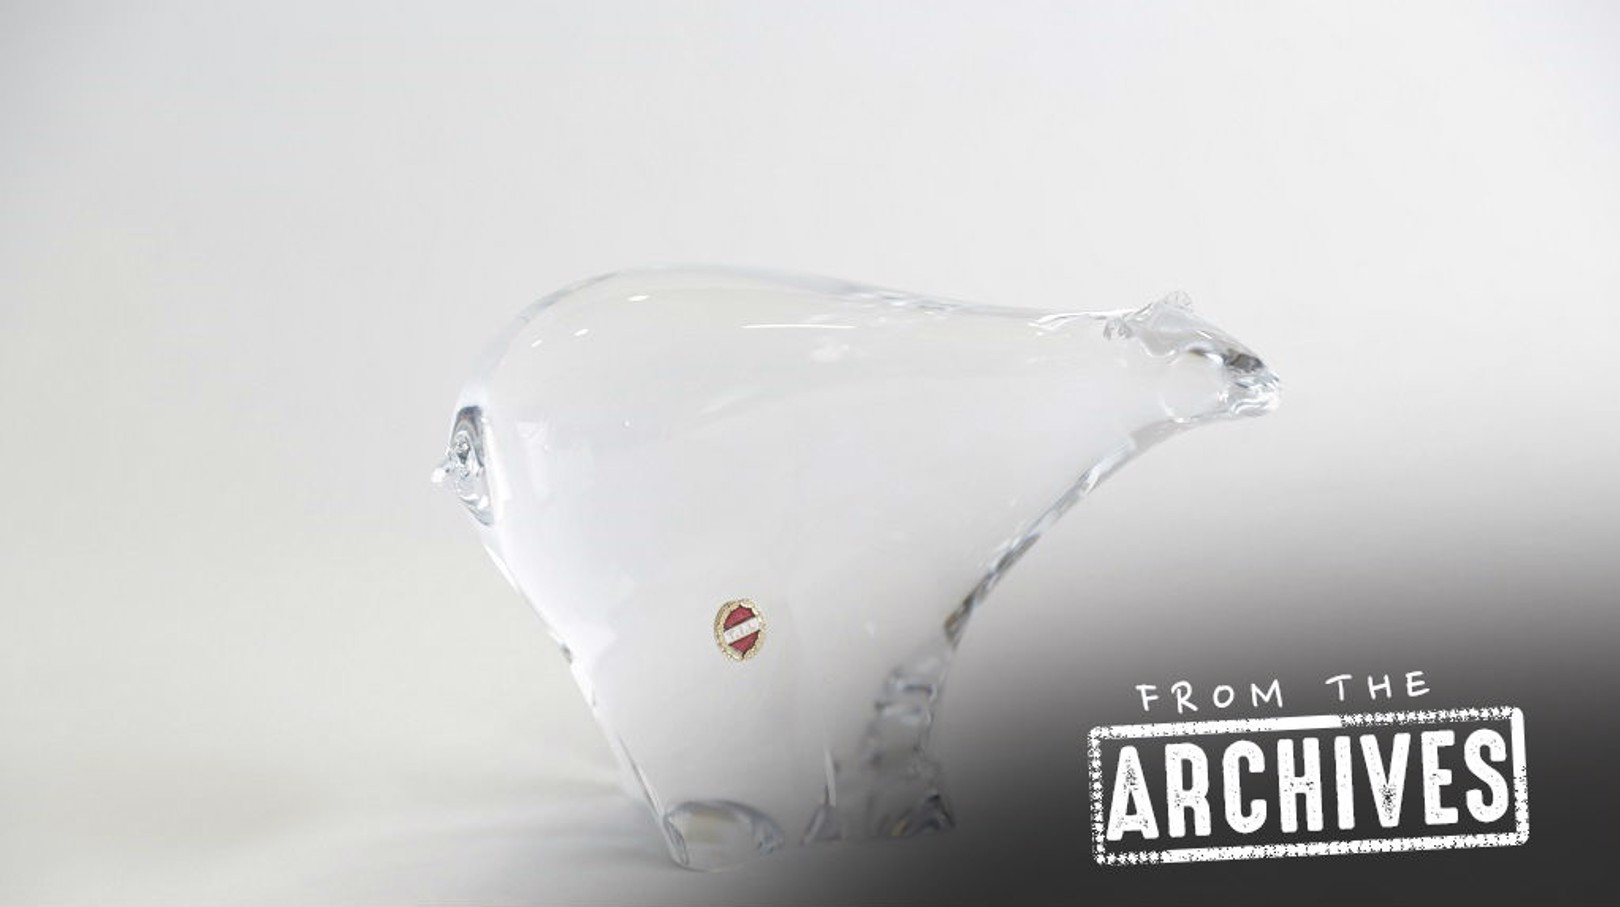 From the archives: Polar bears and the ice trophy